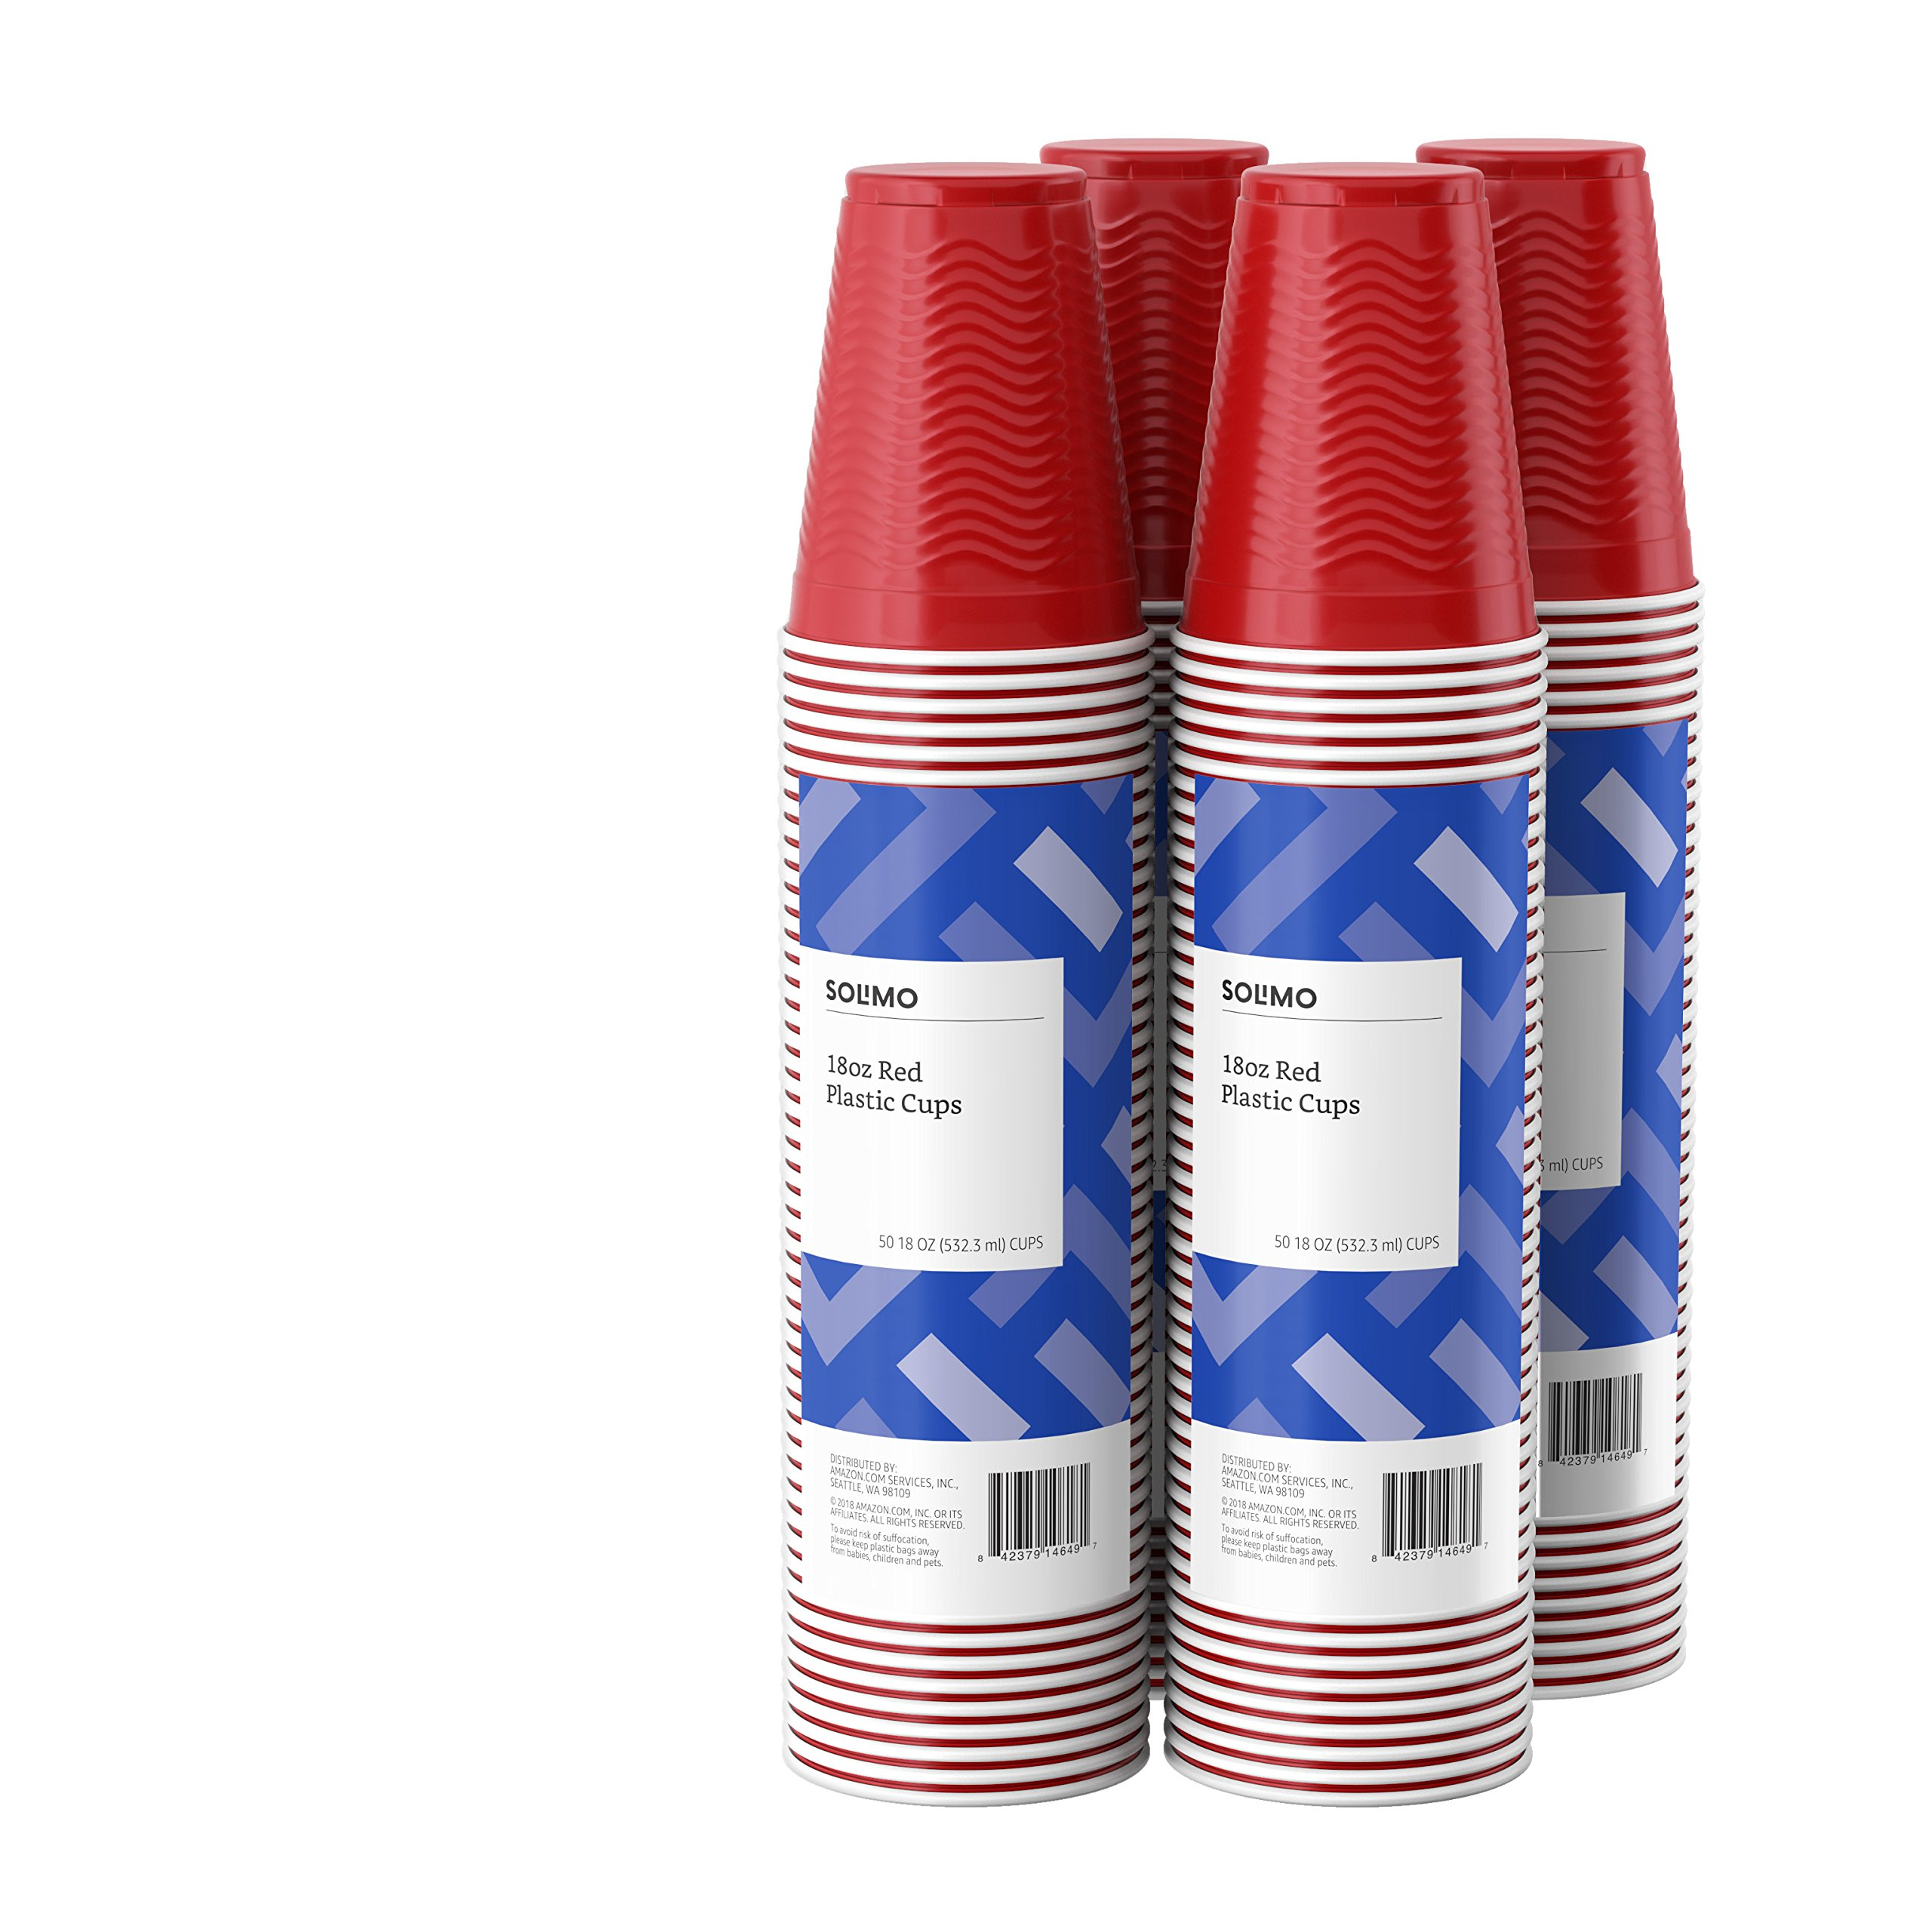 Amazon Brand - Solimo 18oz Disposable Plastic Cups, 200 Count, Red